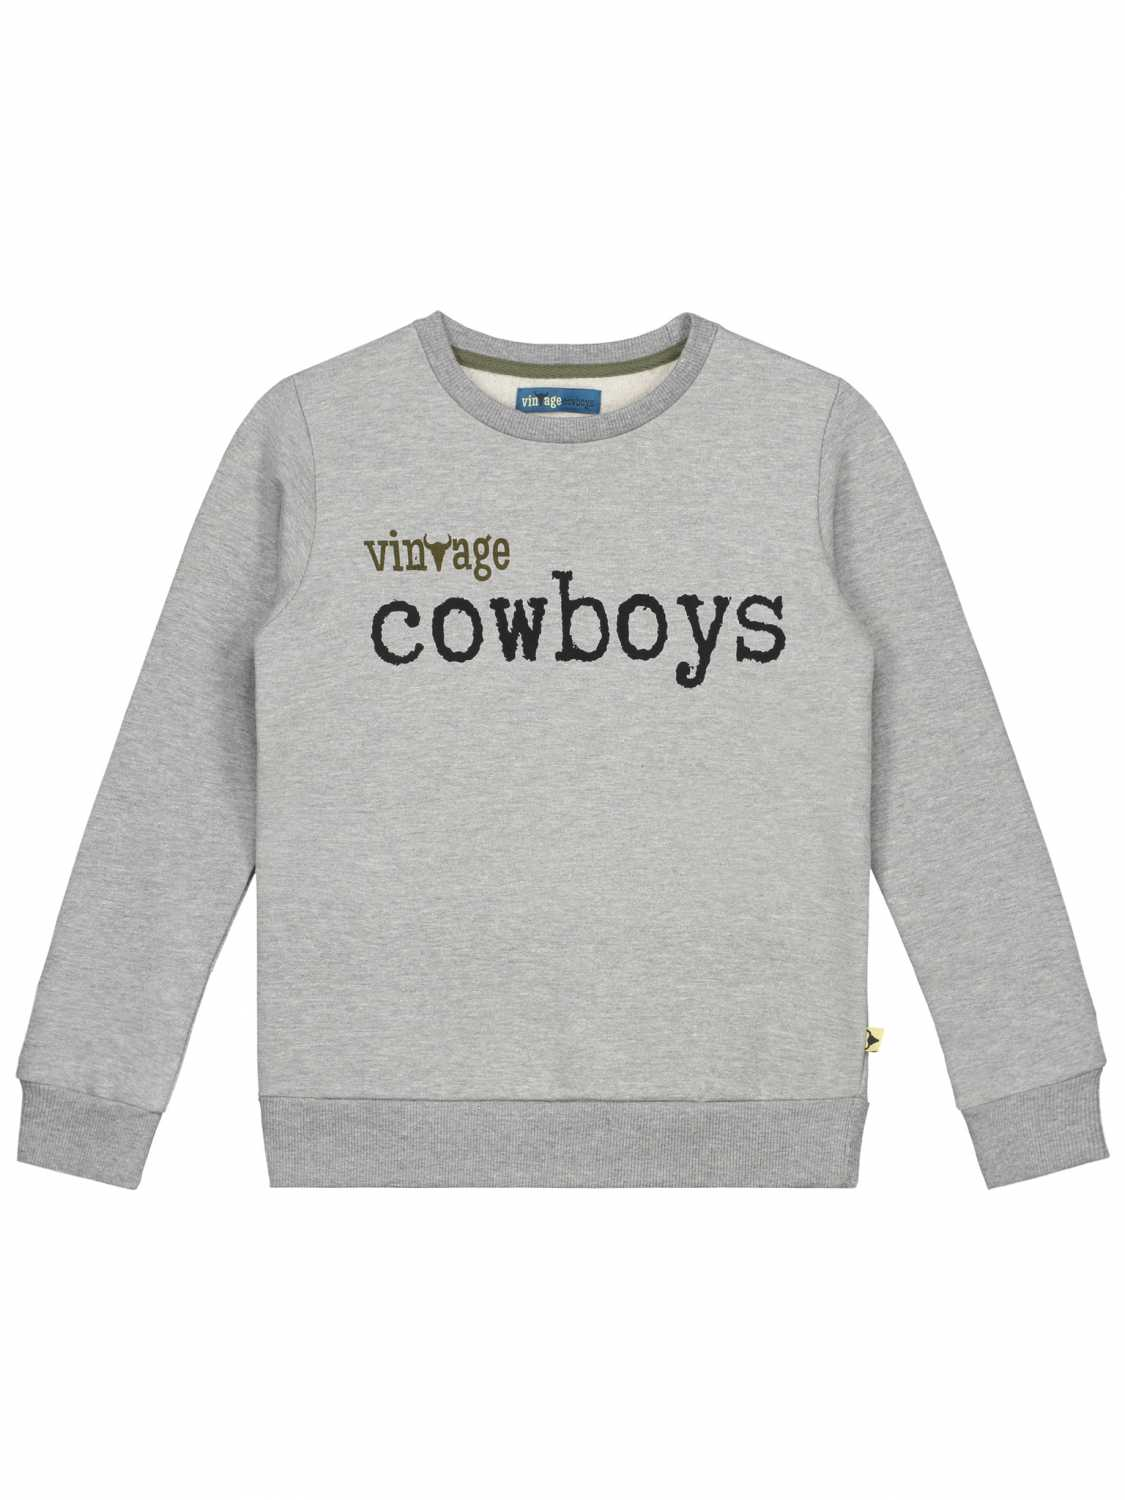 Vintage Cowboys Sweater